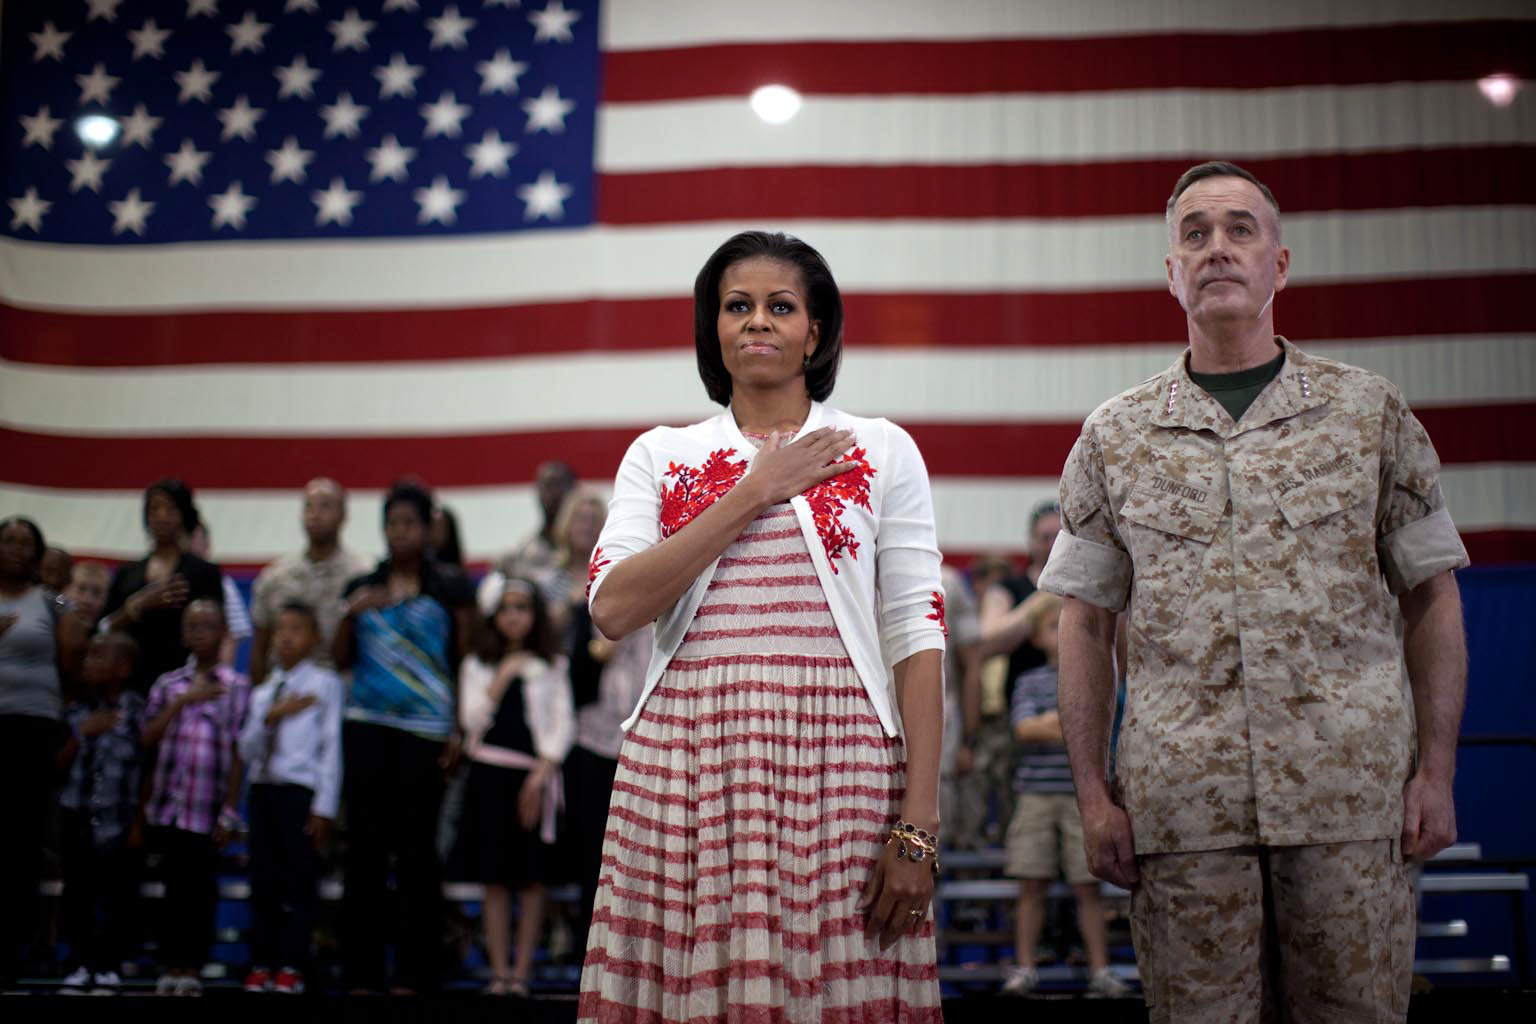 First Lady Michelle Obama and Gen. Joseph Dunford stand during national anthem at Goettge Memorial Field House at Camp Lejeune, N.C.